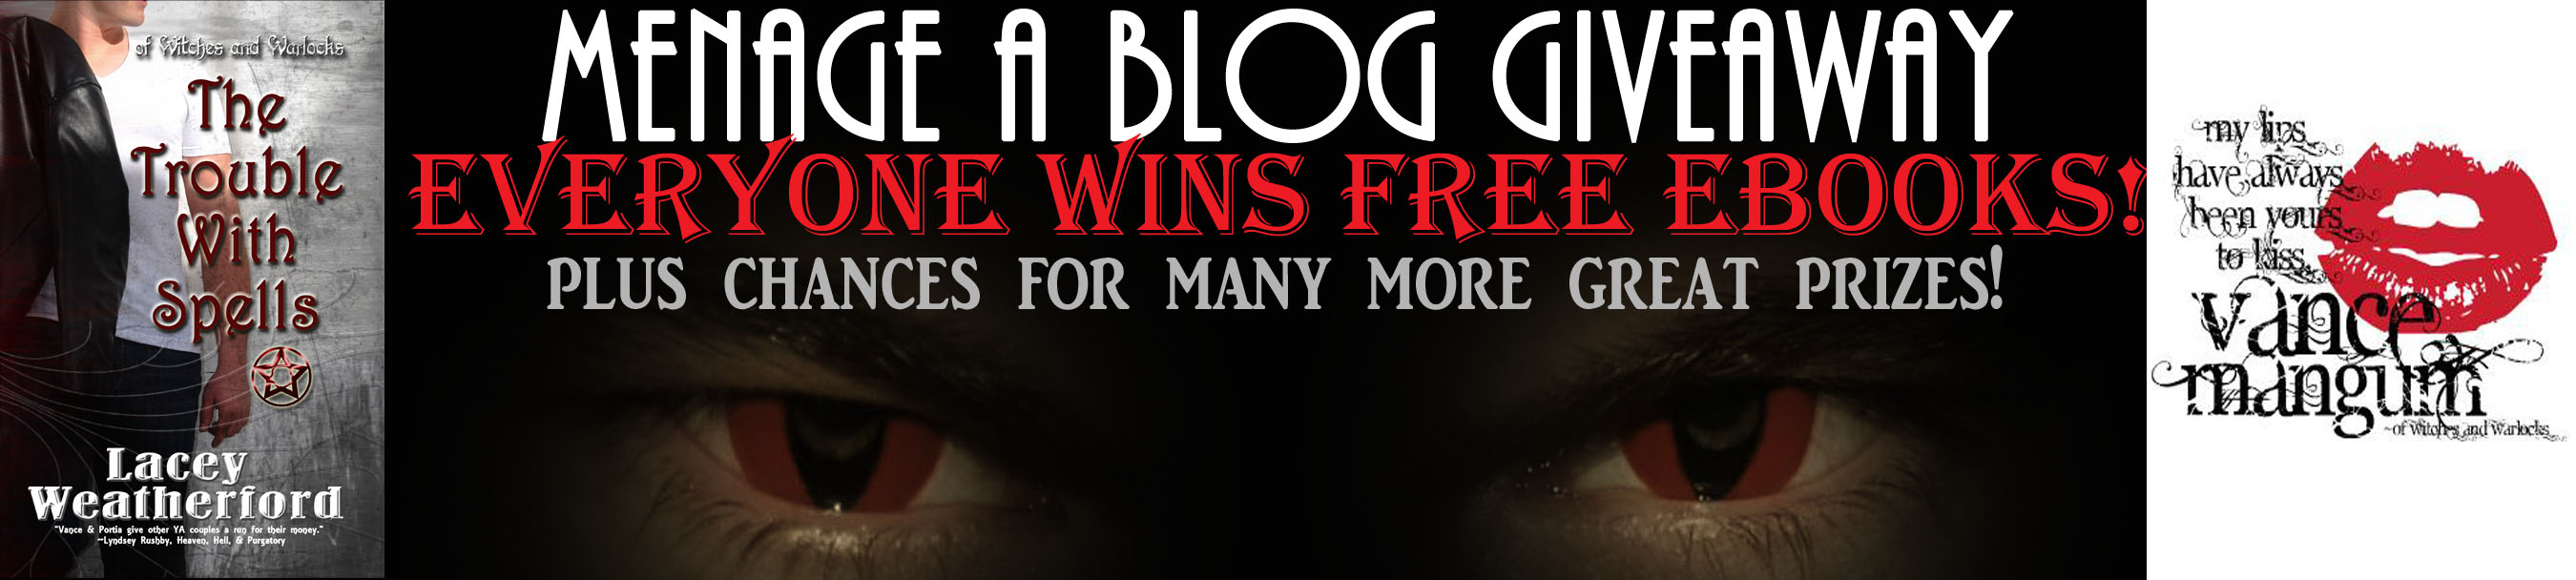 Menage a Blog!  A HOT guy & free books,… what's not to love?!